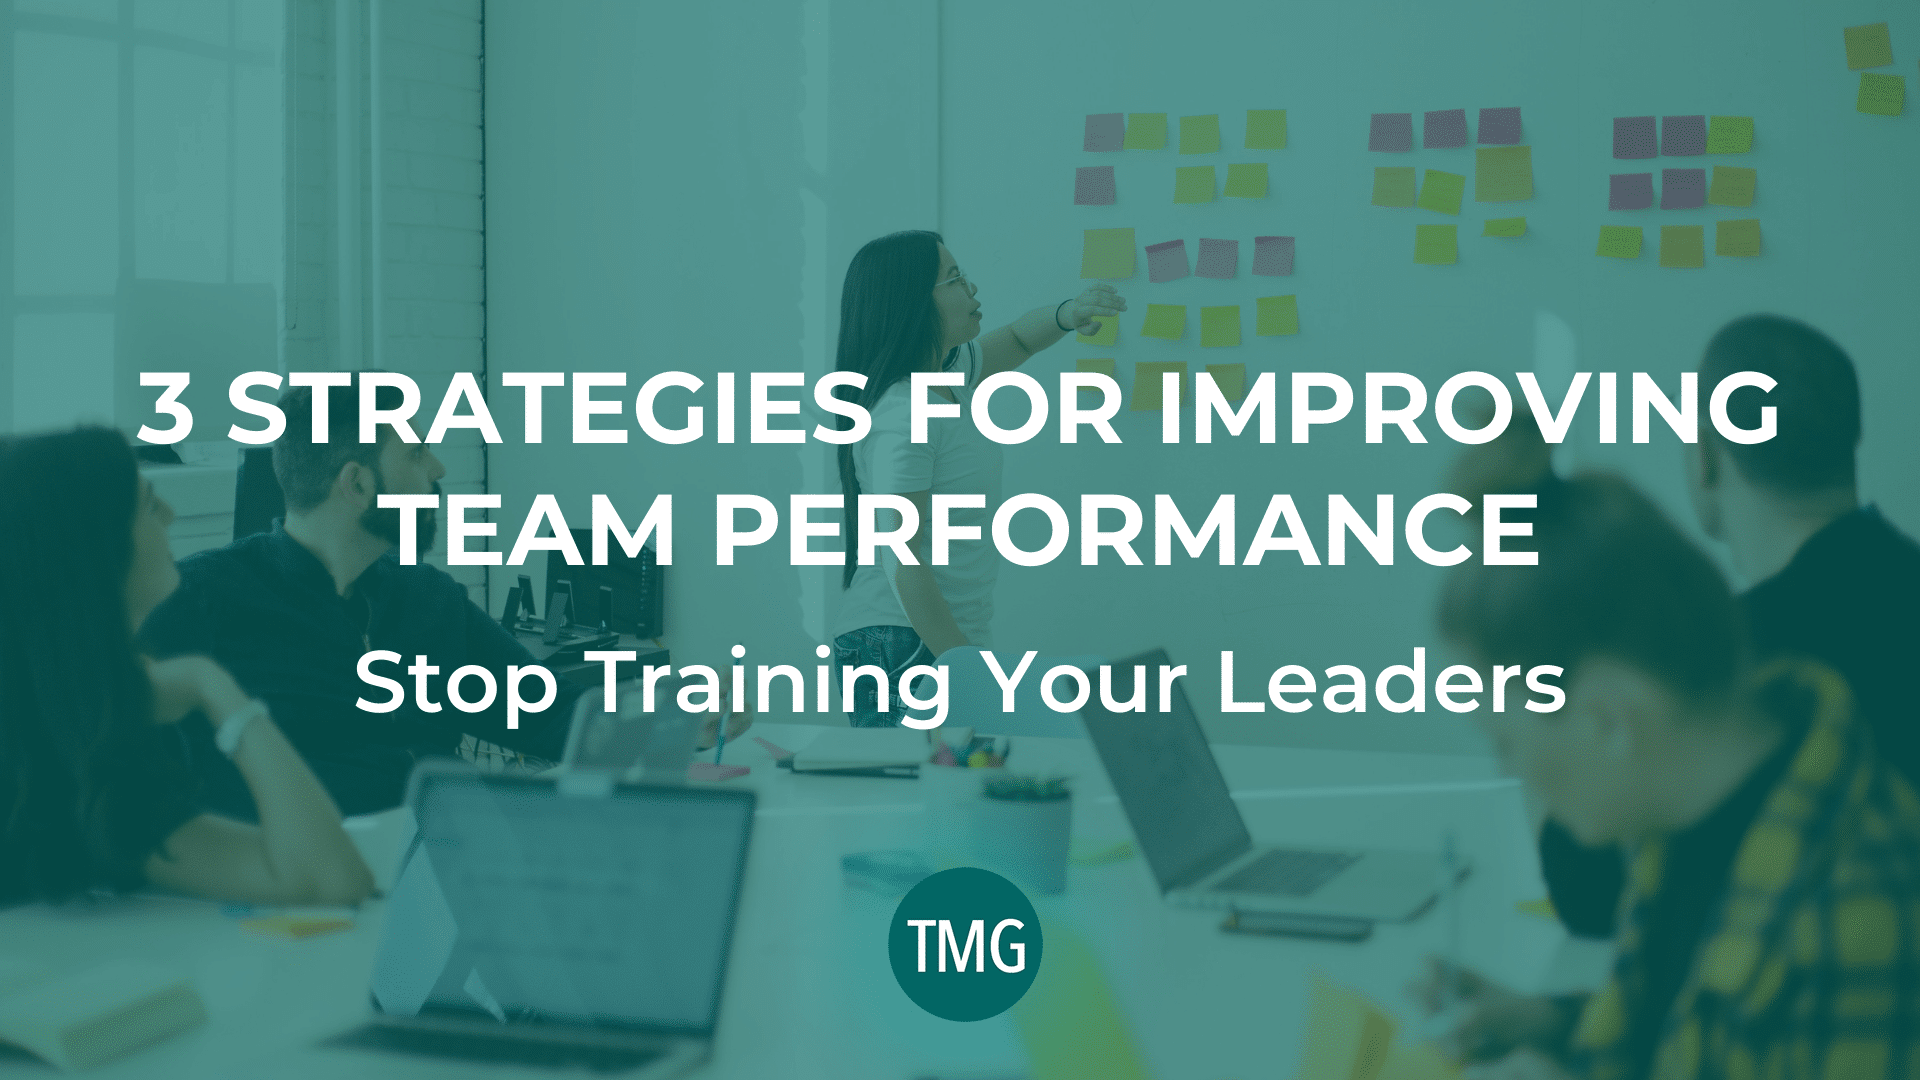 stop-training-your-leaders-header-image